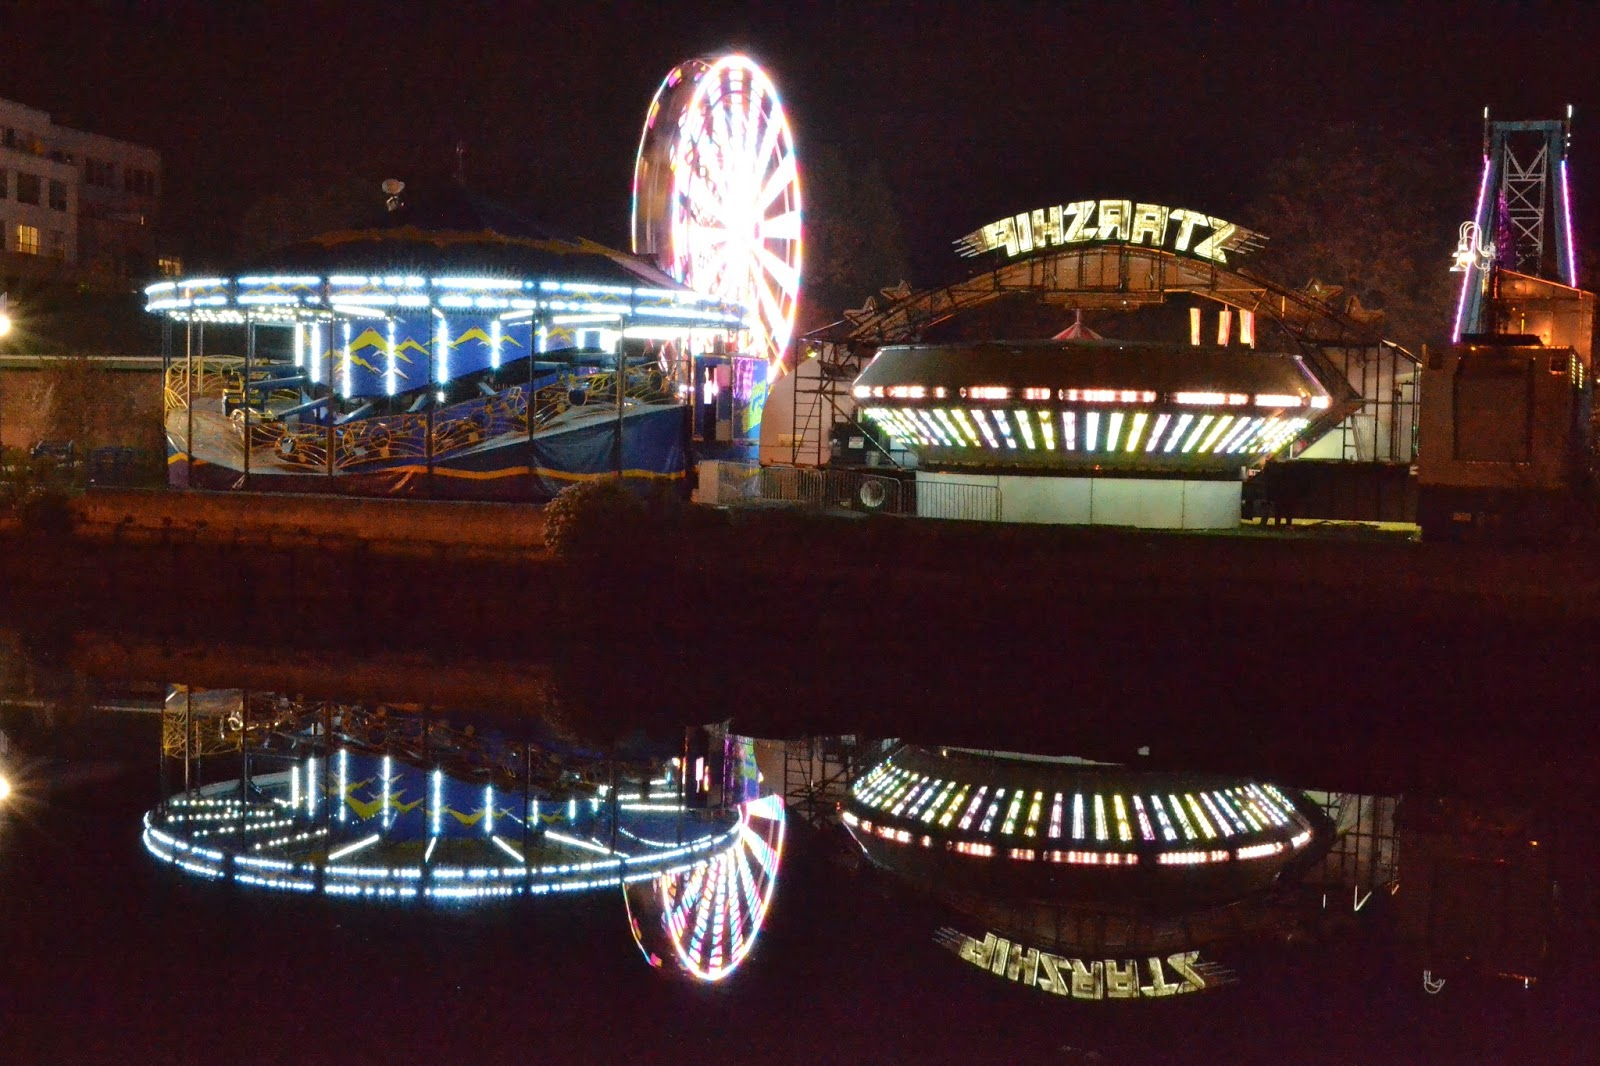 carnival, reflection, night, salem, haunted happenings, bright color